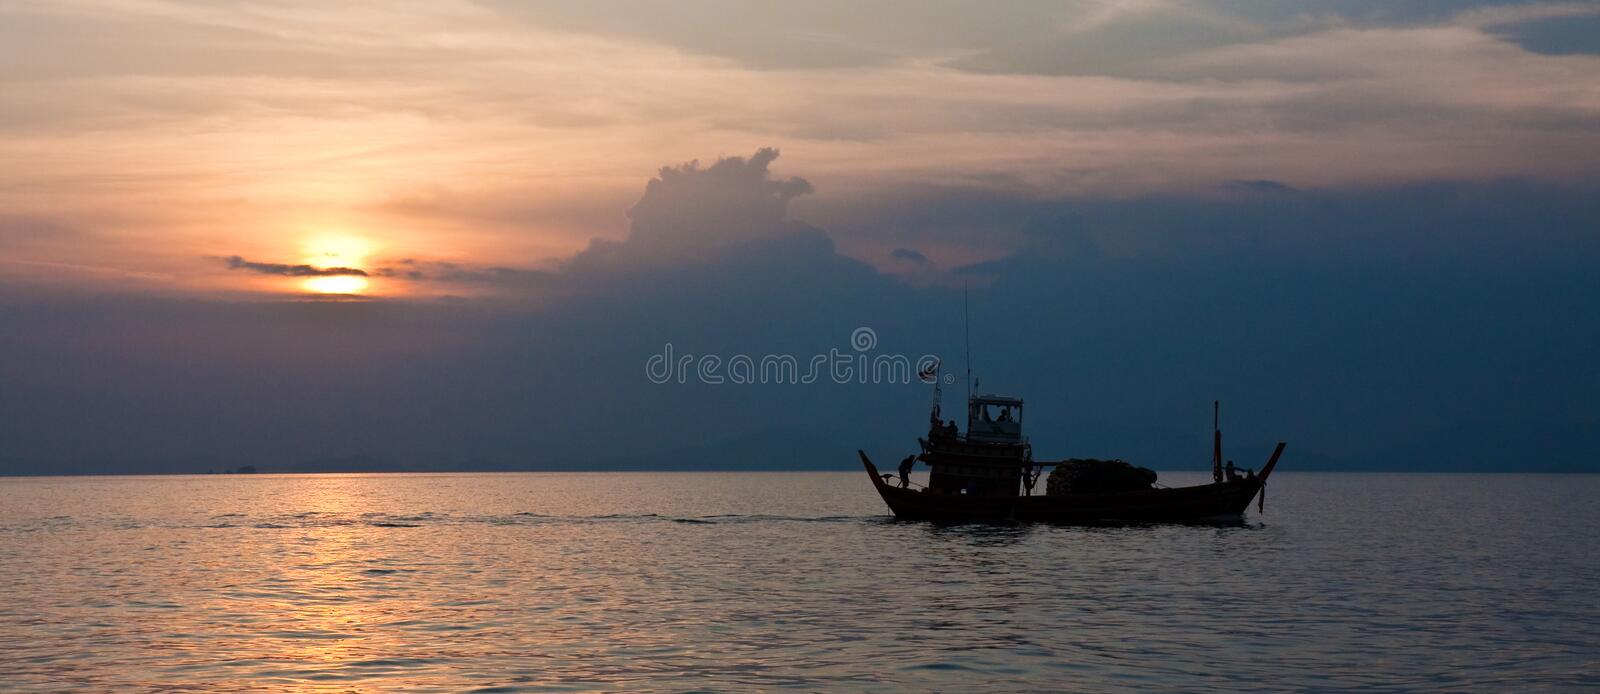 Cargo Boat at Sunset royalty free stock photos